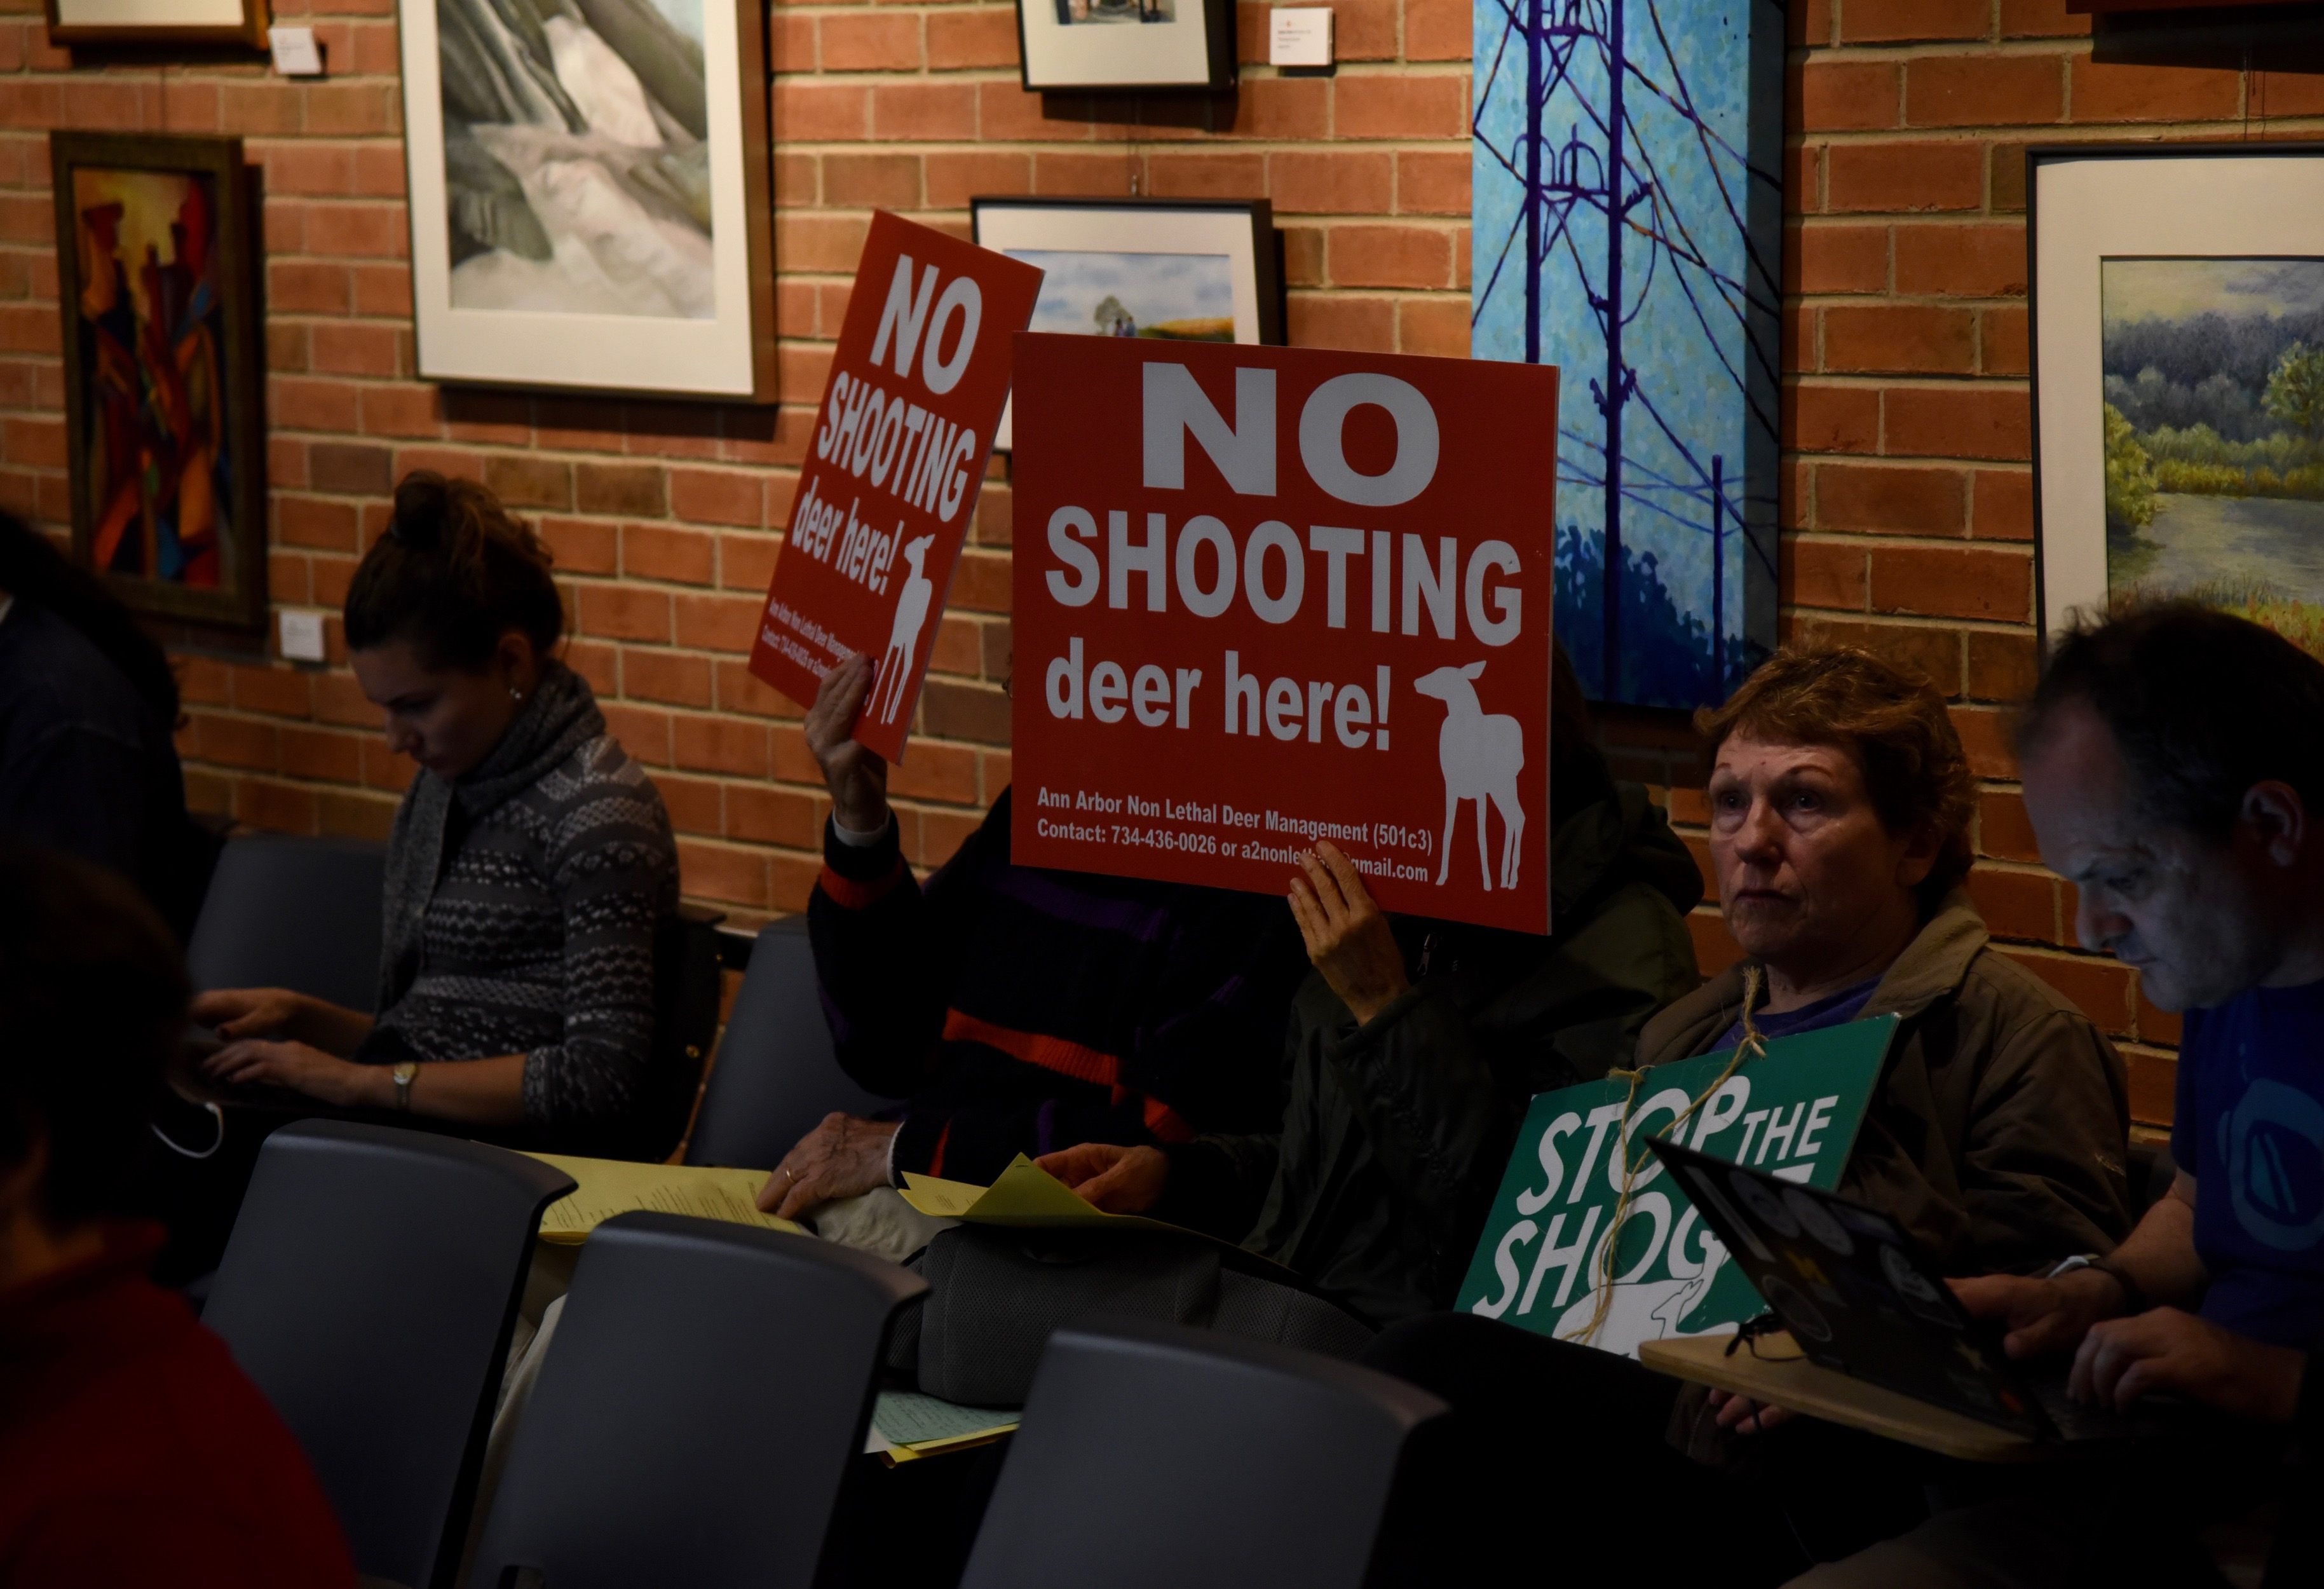 Ann Arbor releases plan to kill up to 150 more deer this winter